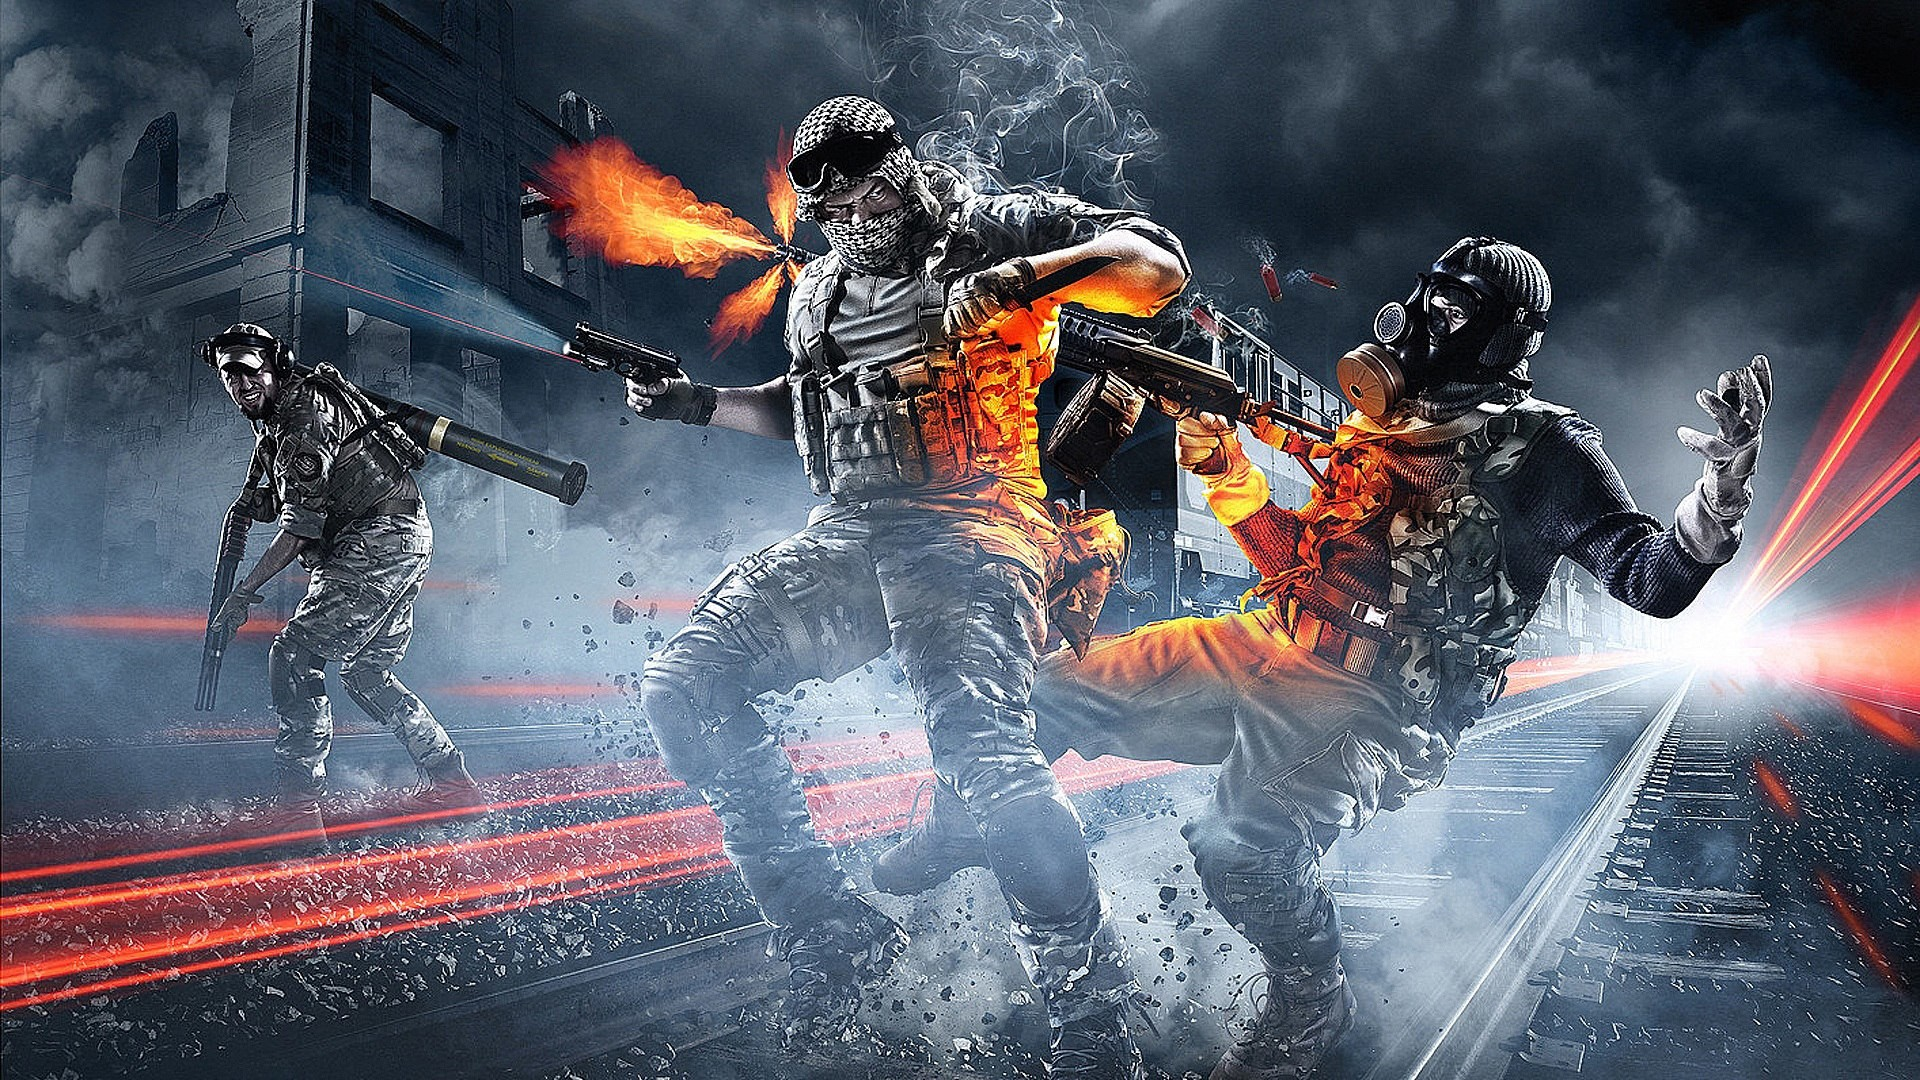 Epic Gaming Wallpapers (73+ Images